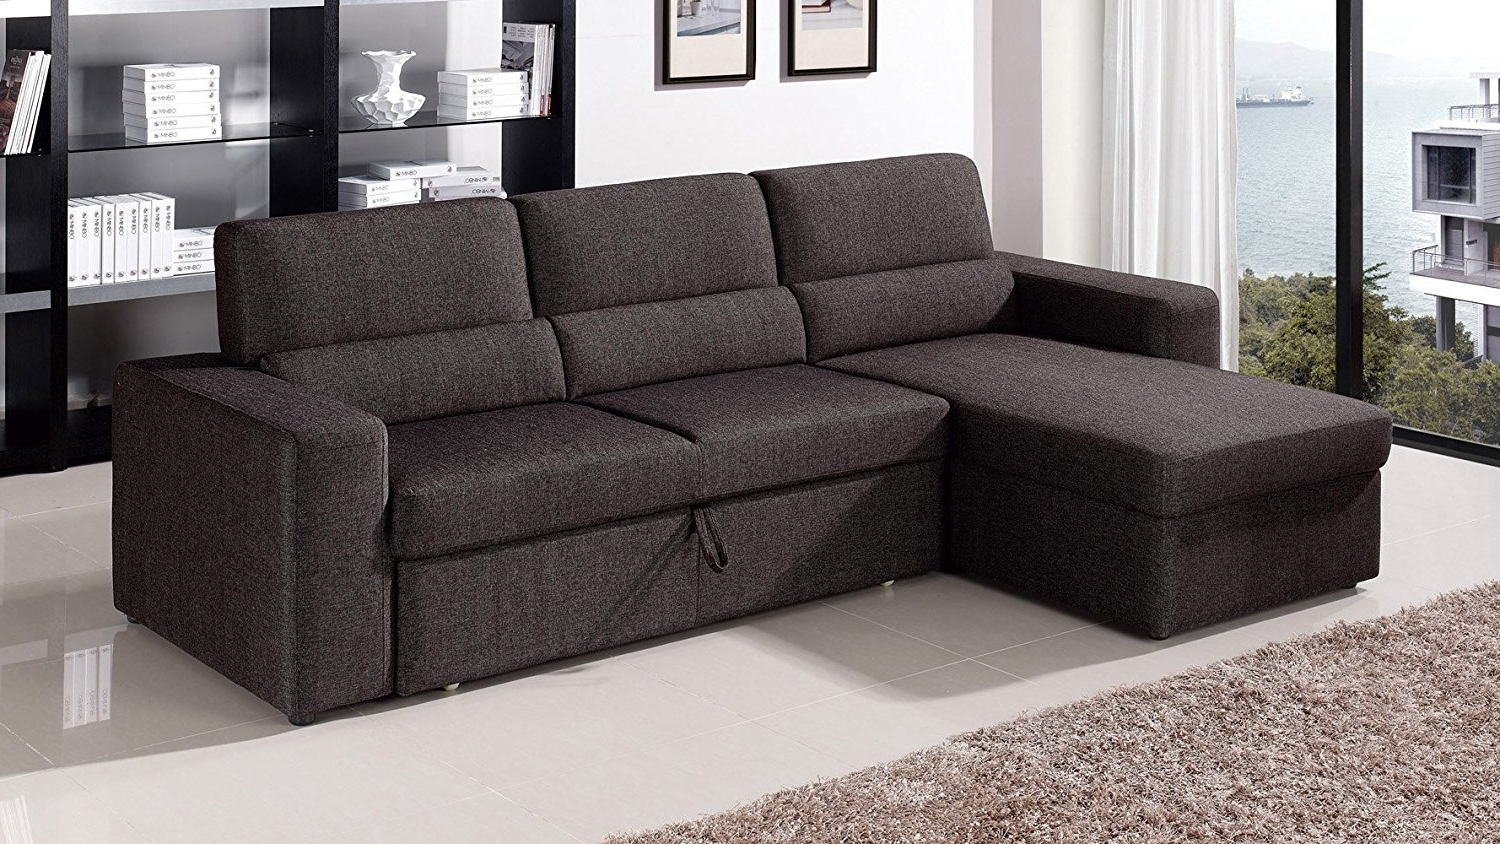 Newest Sectional Sofas At Amazon Within Amazon: Black/brown Clubber Sleeper Sectional Sofa – Right (View 6 of 15)